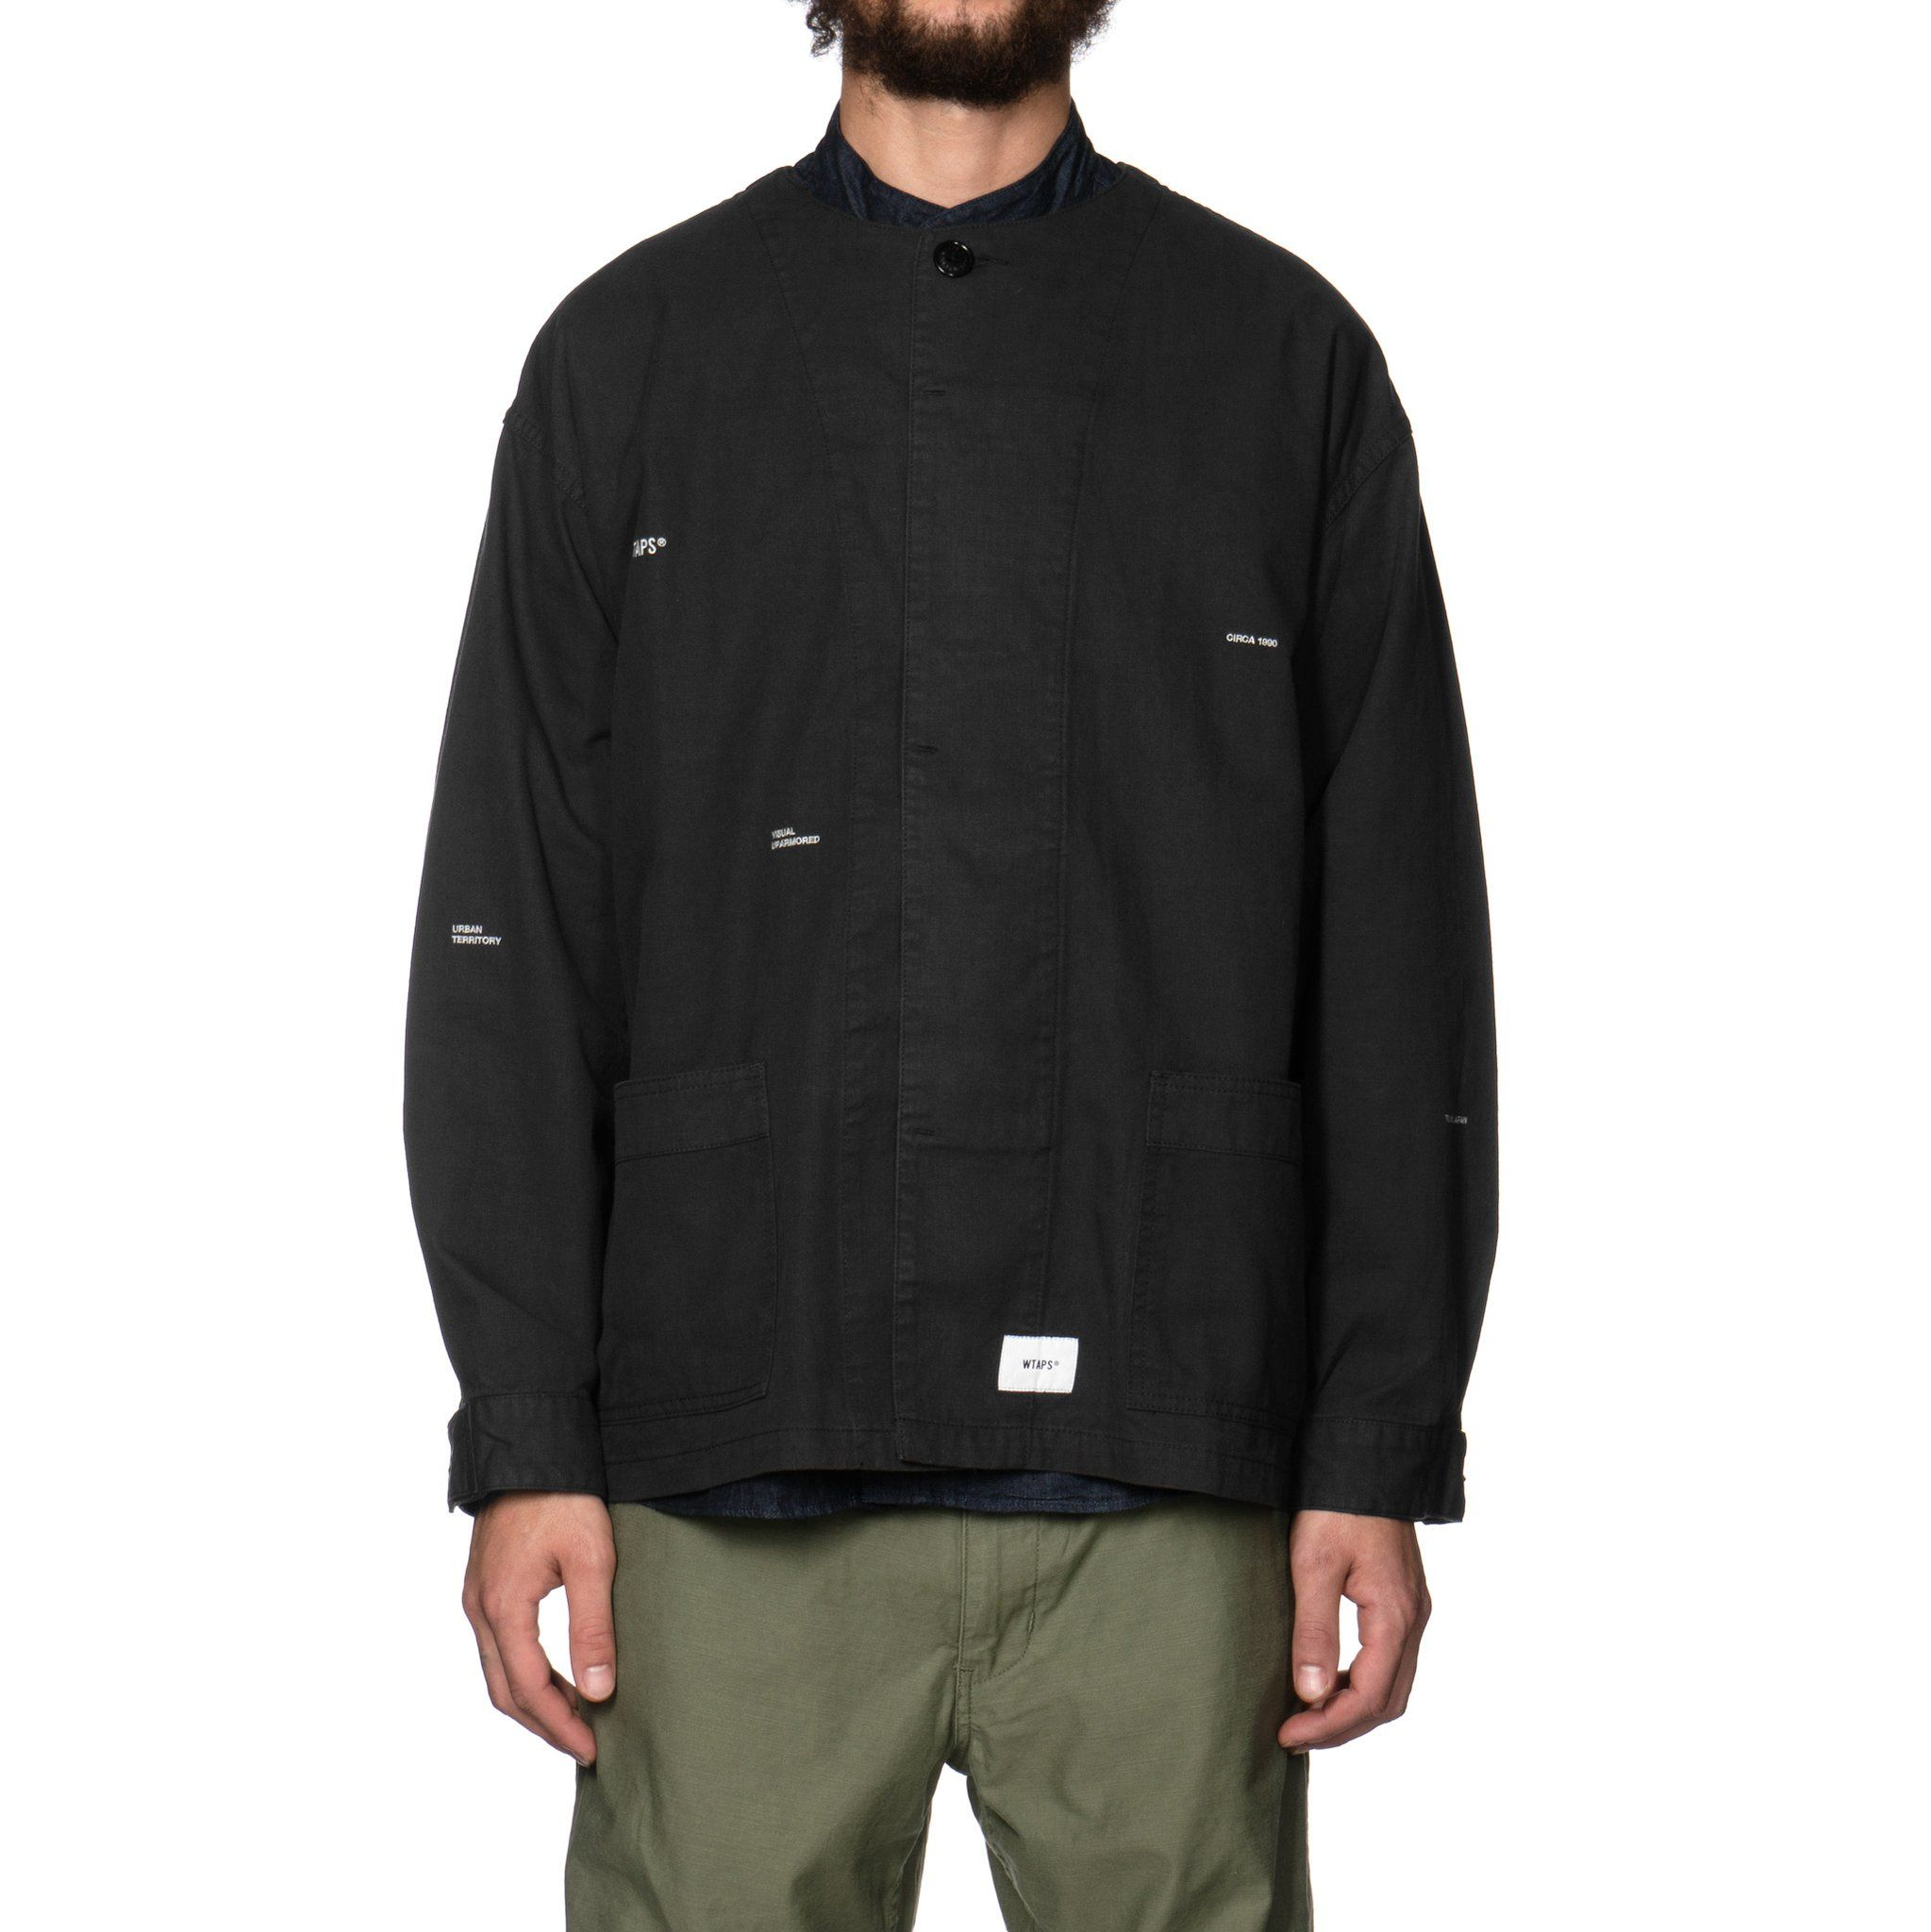 77202def2a9f4 WTAPS Skit   Shirt. Cotton. Serge Black